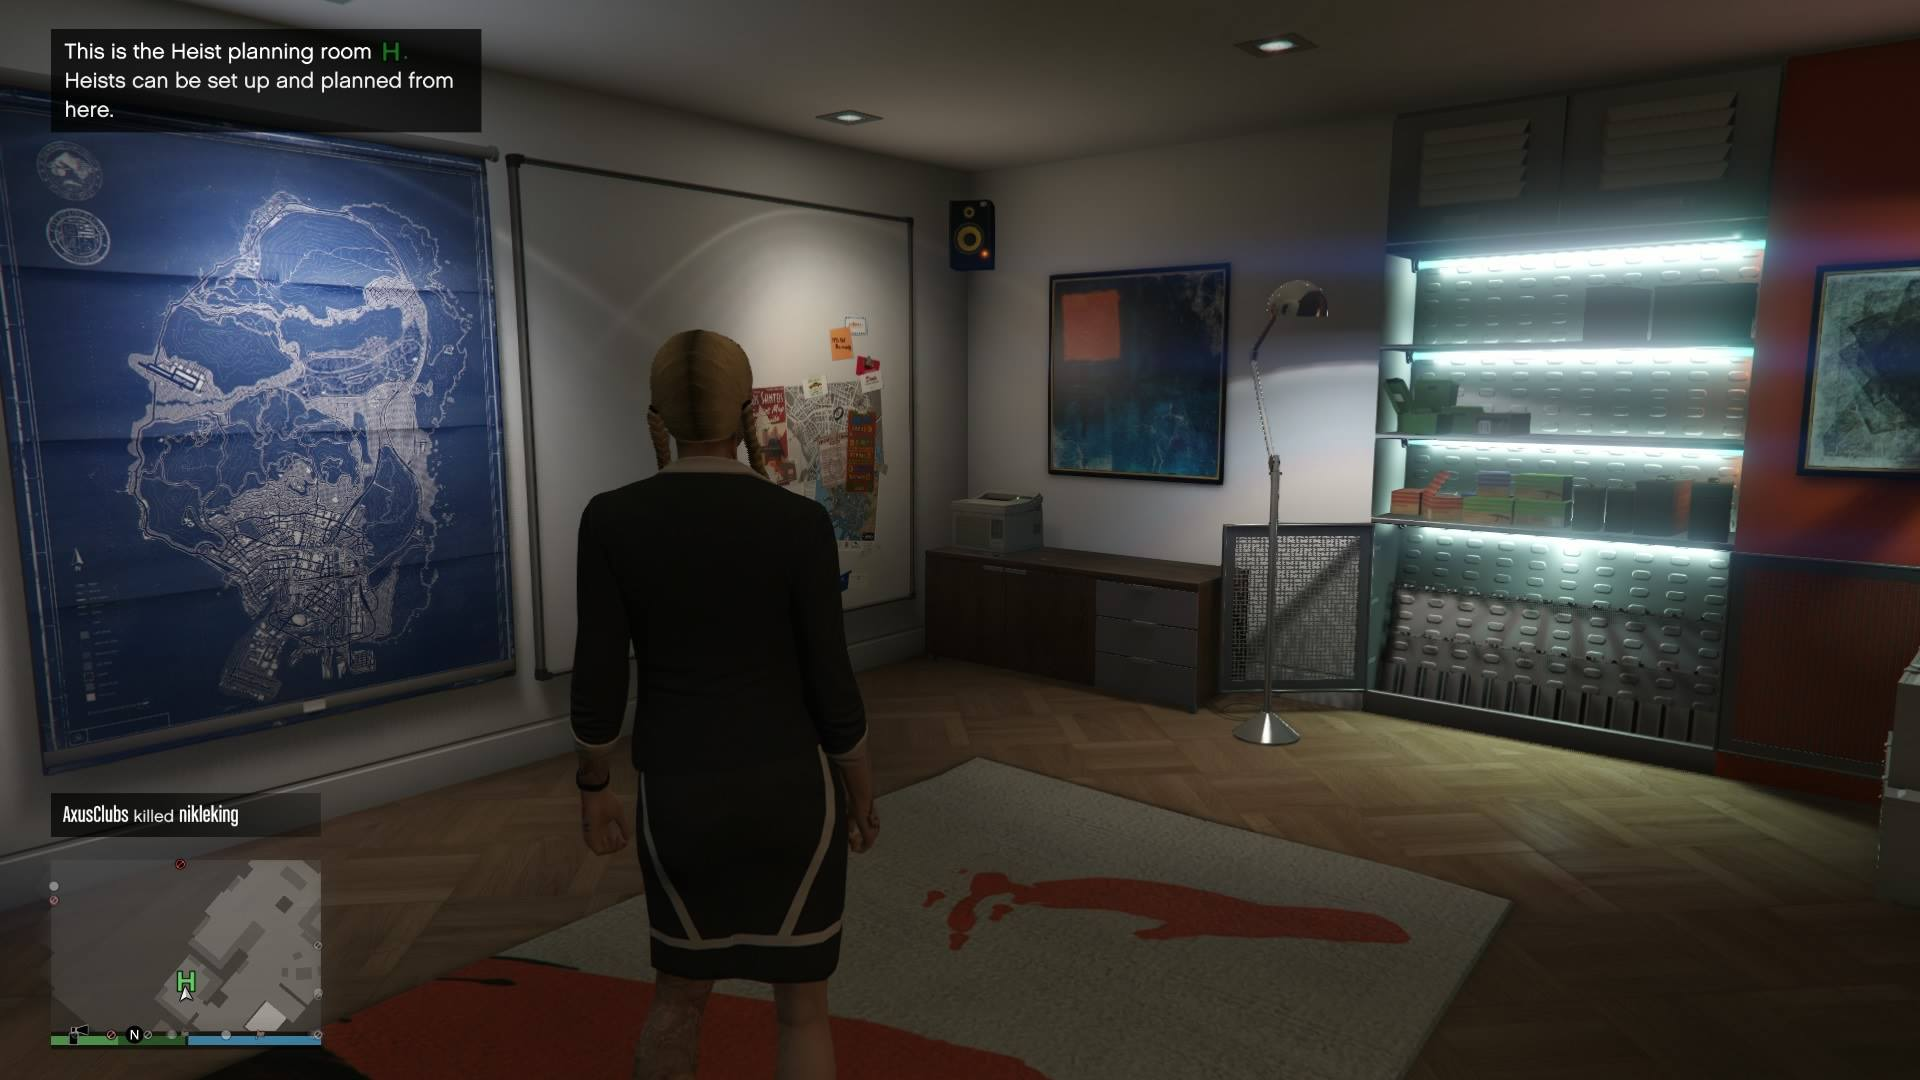 Gta 5 Online Heists Guide The Fleeca Job Vg247: room planner free